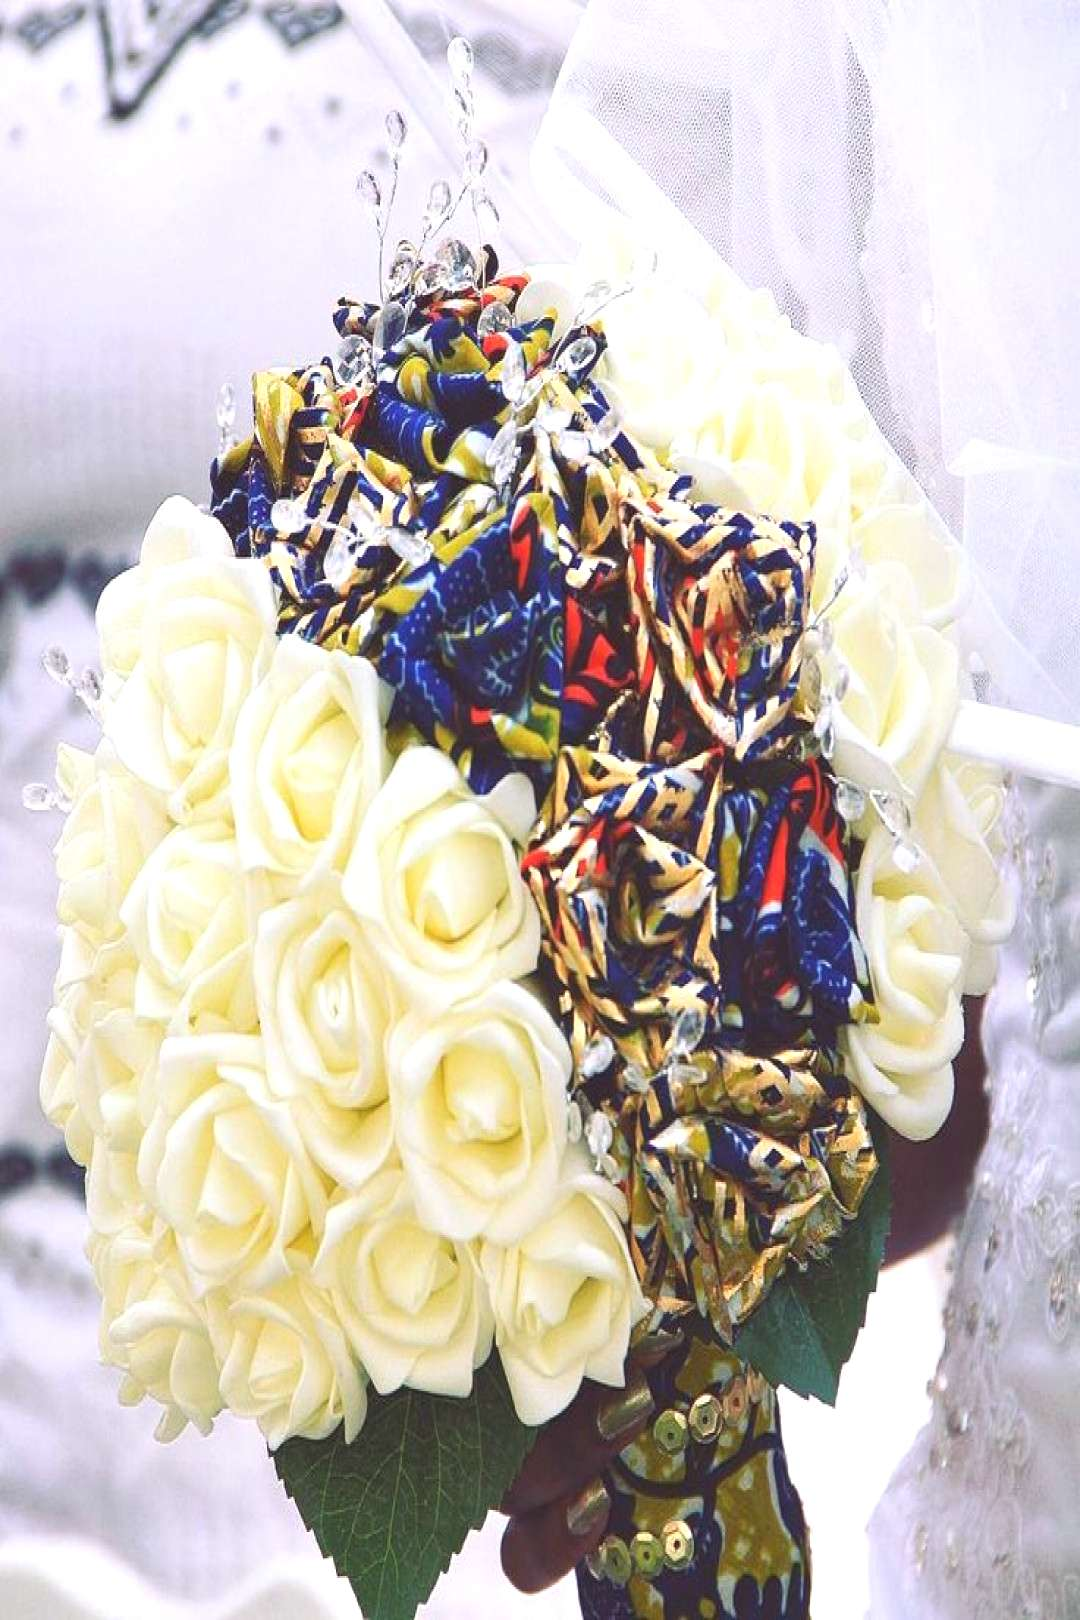 PLANNING A WEDDING / ENGAGEMENT IN GHANA - ADEDE My ever loving ankara brides bouquet! This was han